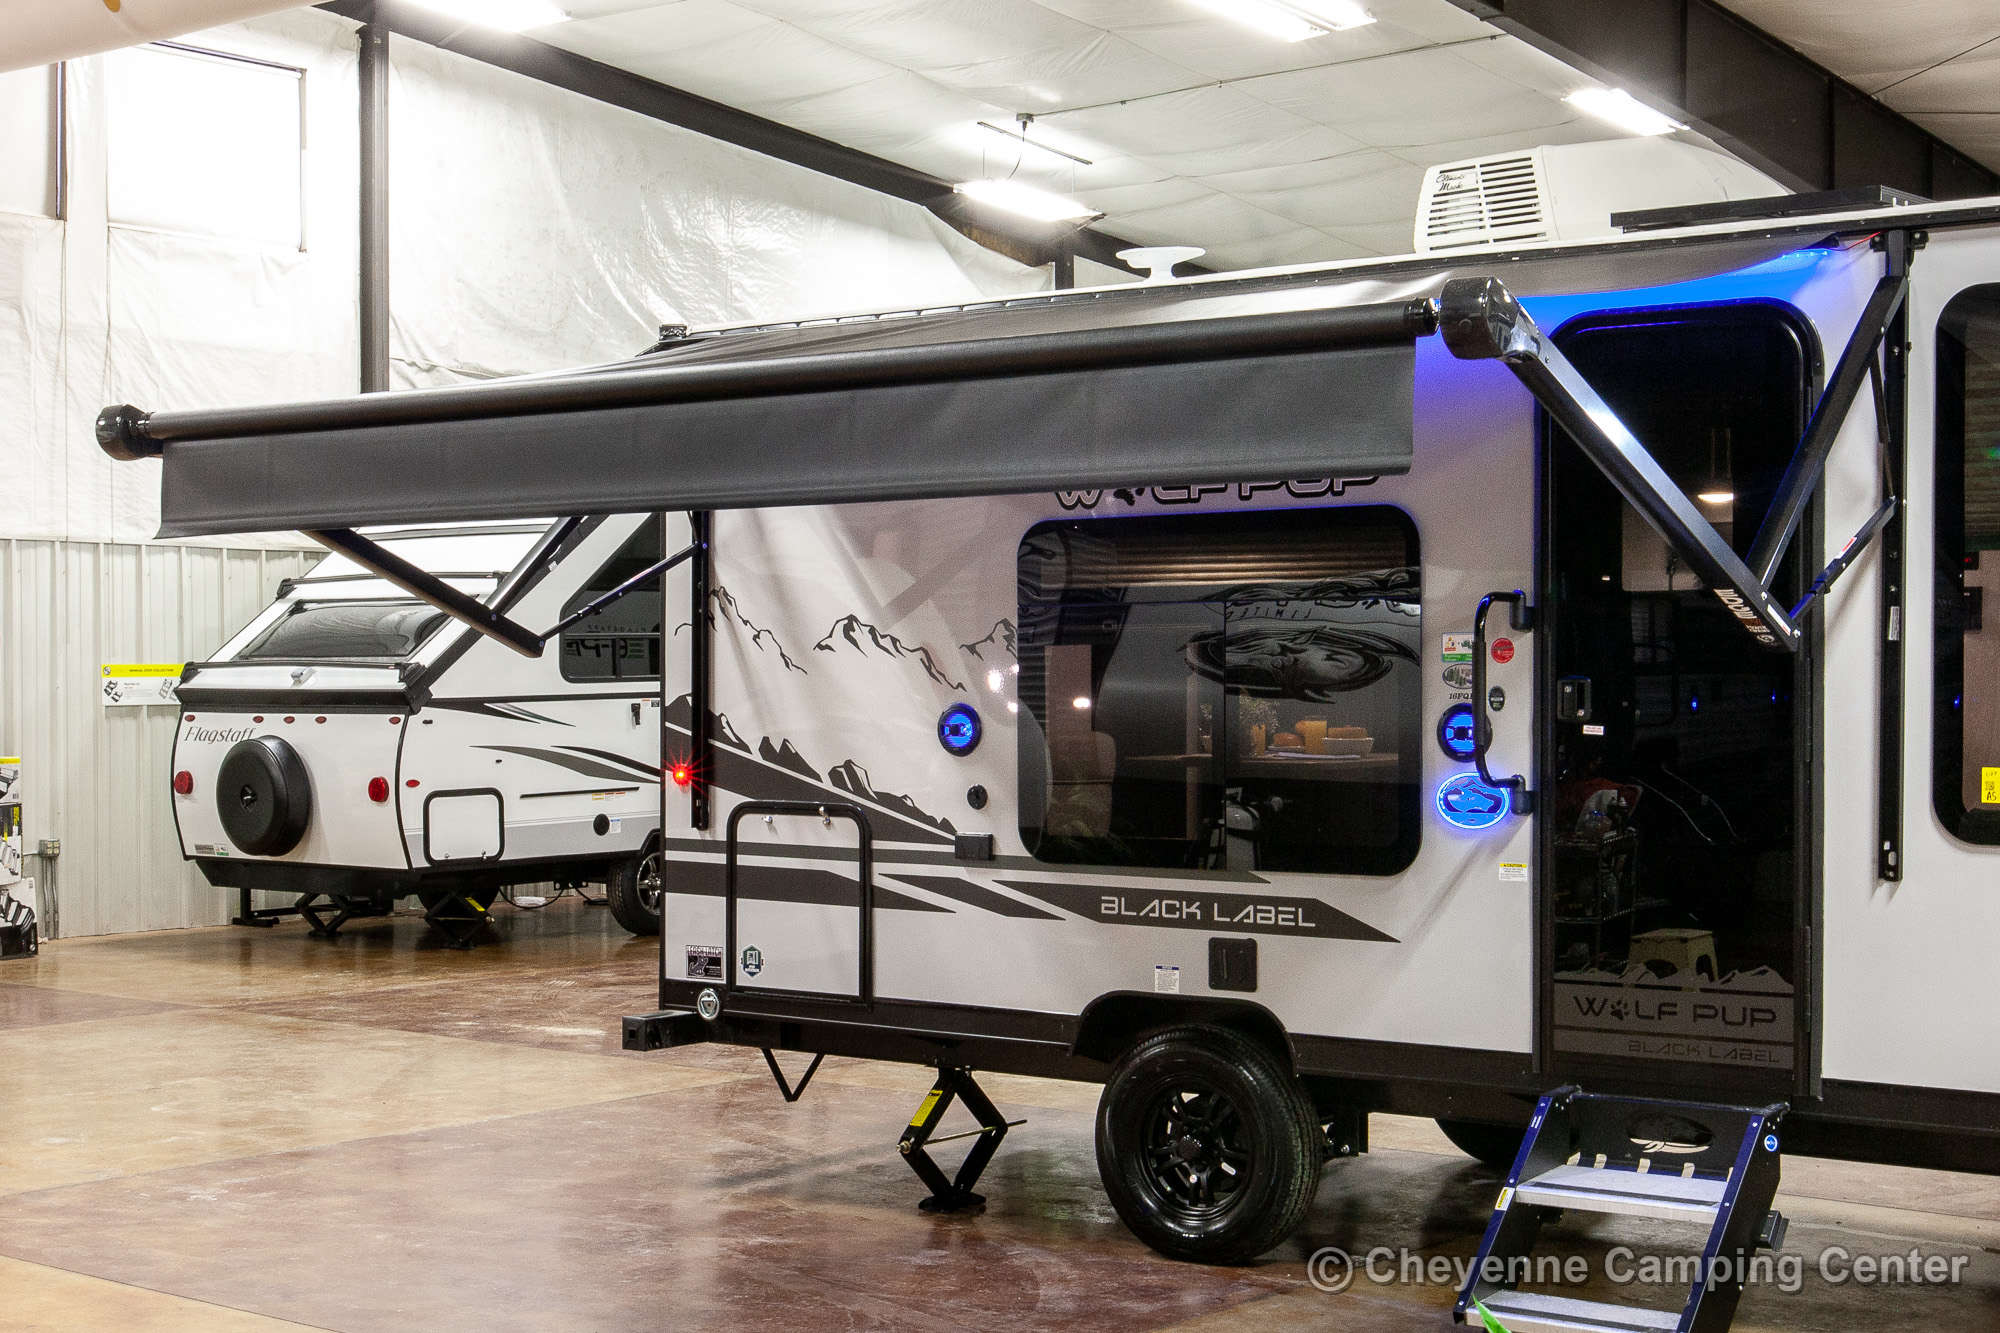 2021 Forest River Cherokee Wolf Pup Black Label 16FQBL Travel Trailer Exterior Image